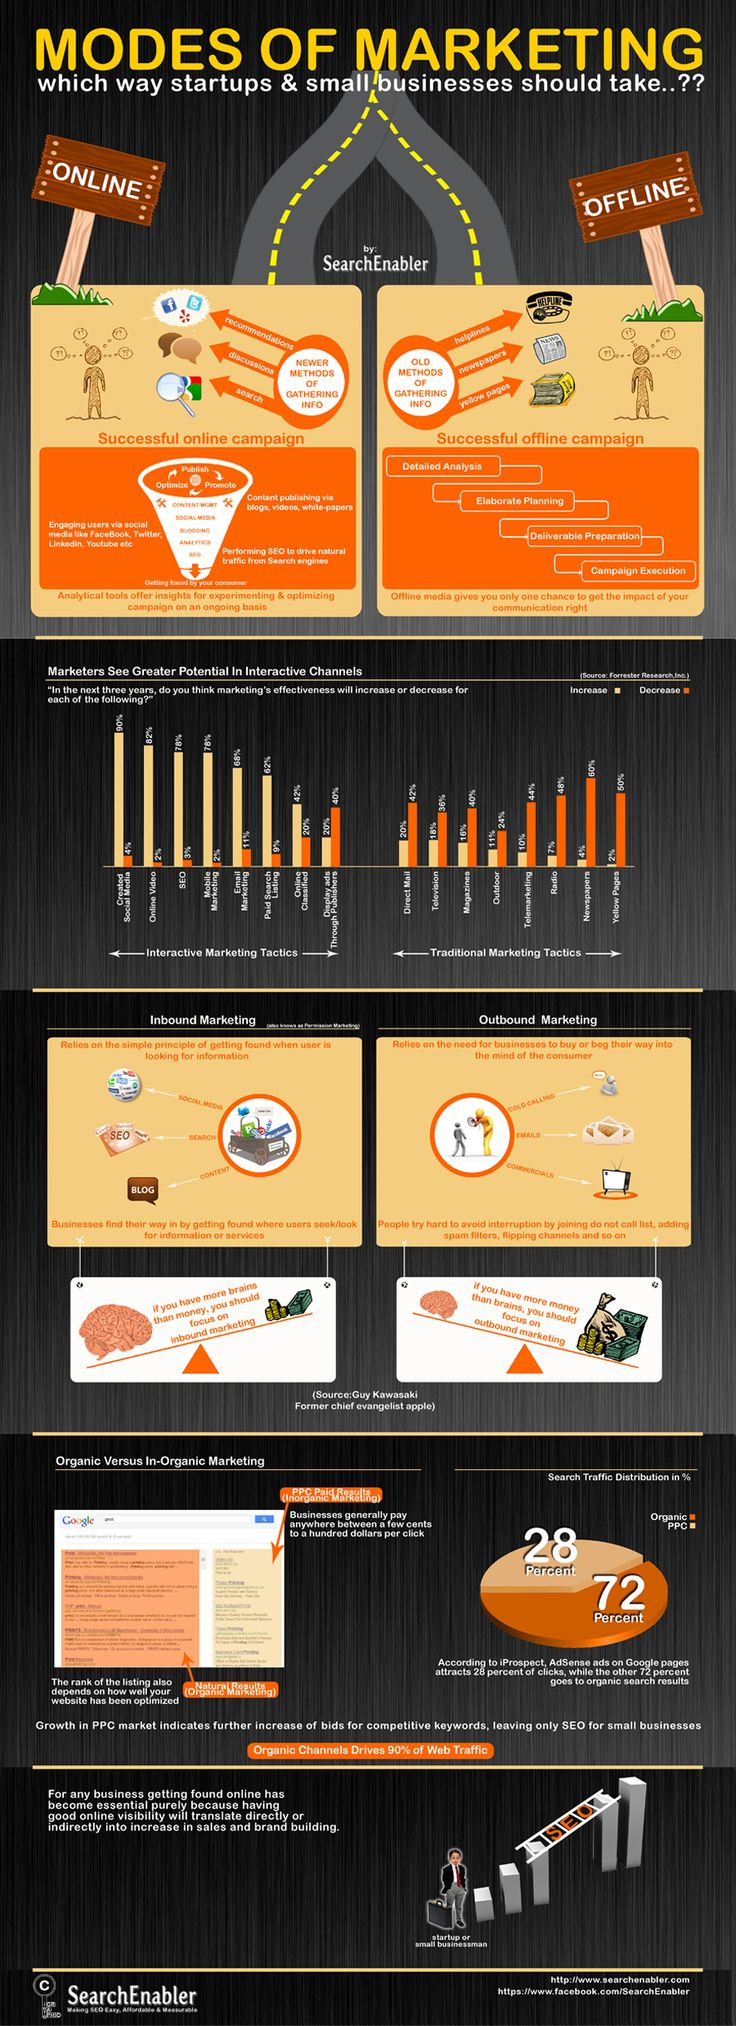 SearchEnabler Marketing infographics provides a quick comparative view on different modes of marketing which can be deployed by start-ups & small busi #internetmarketing